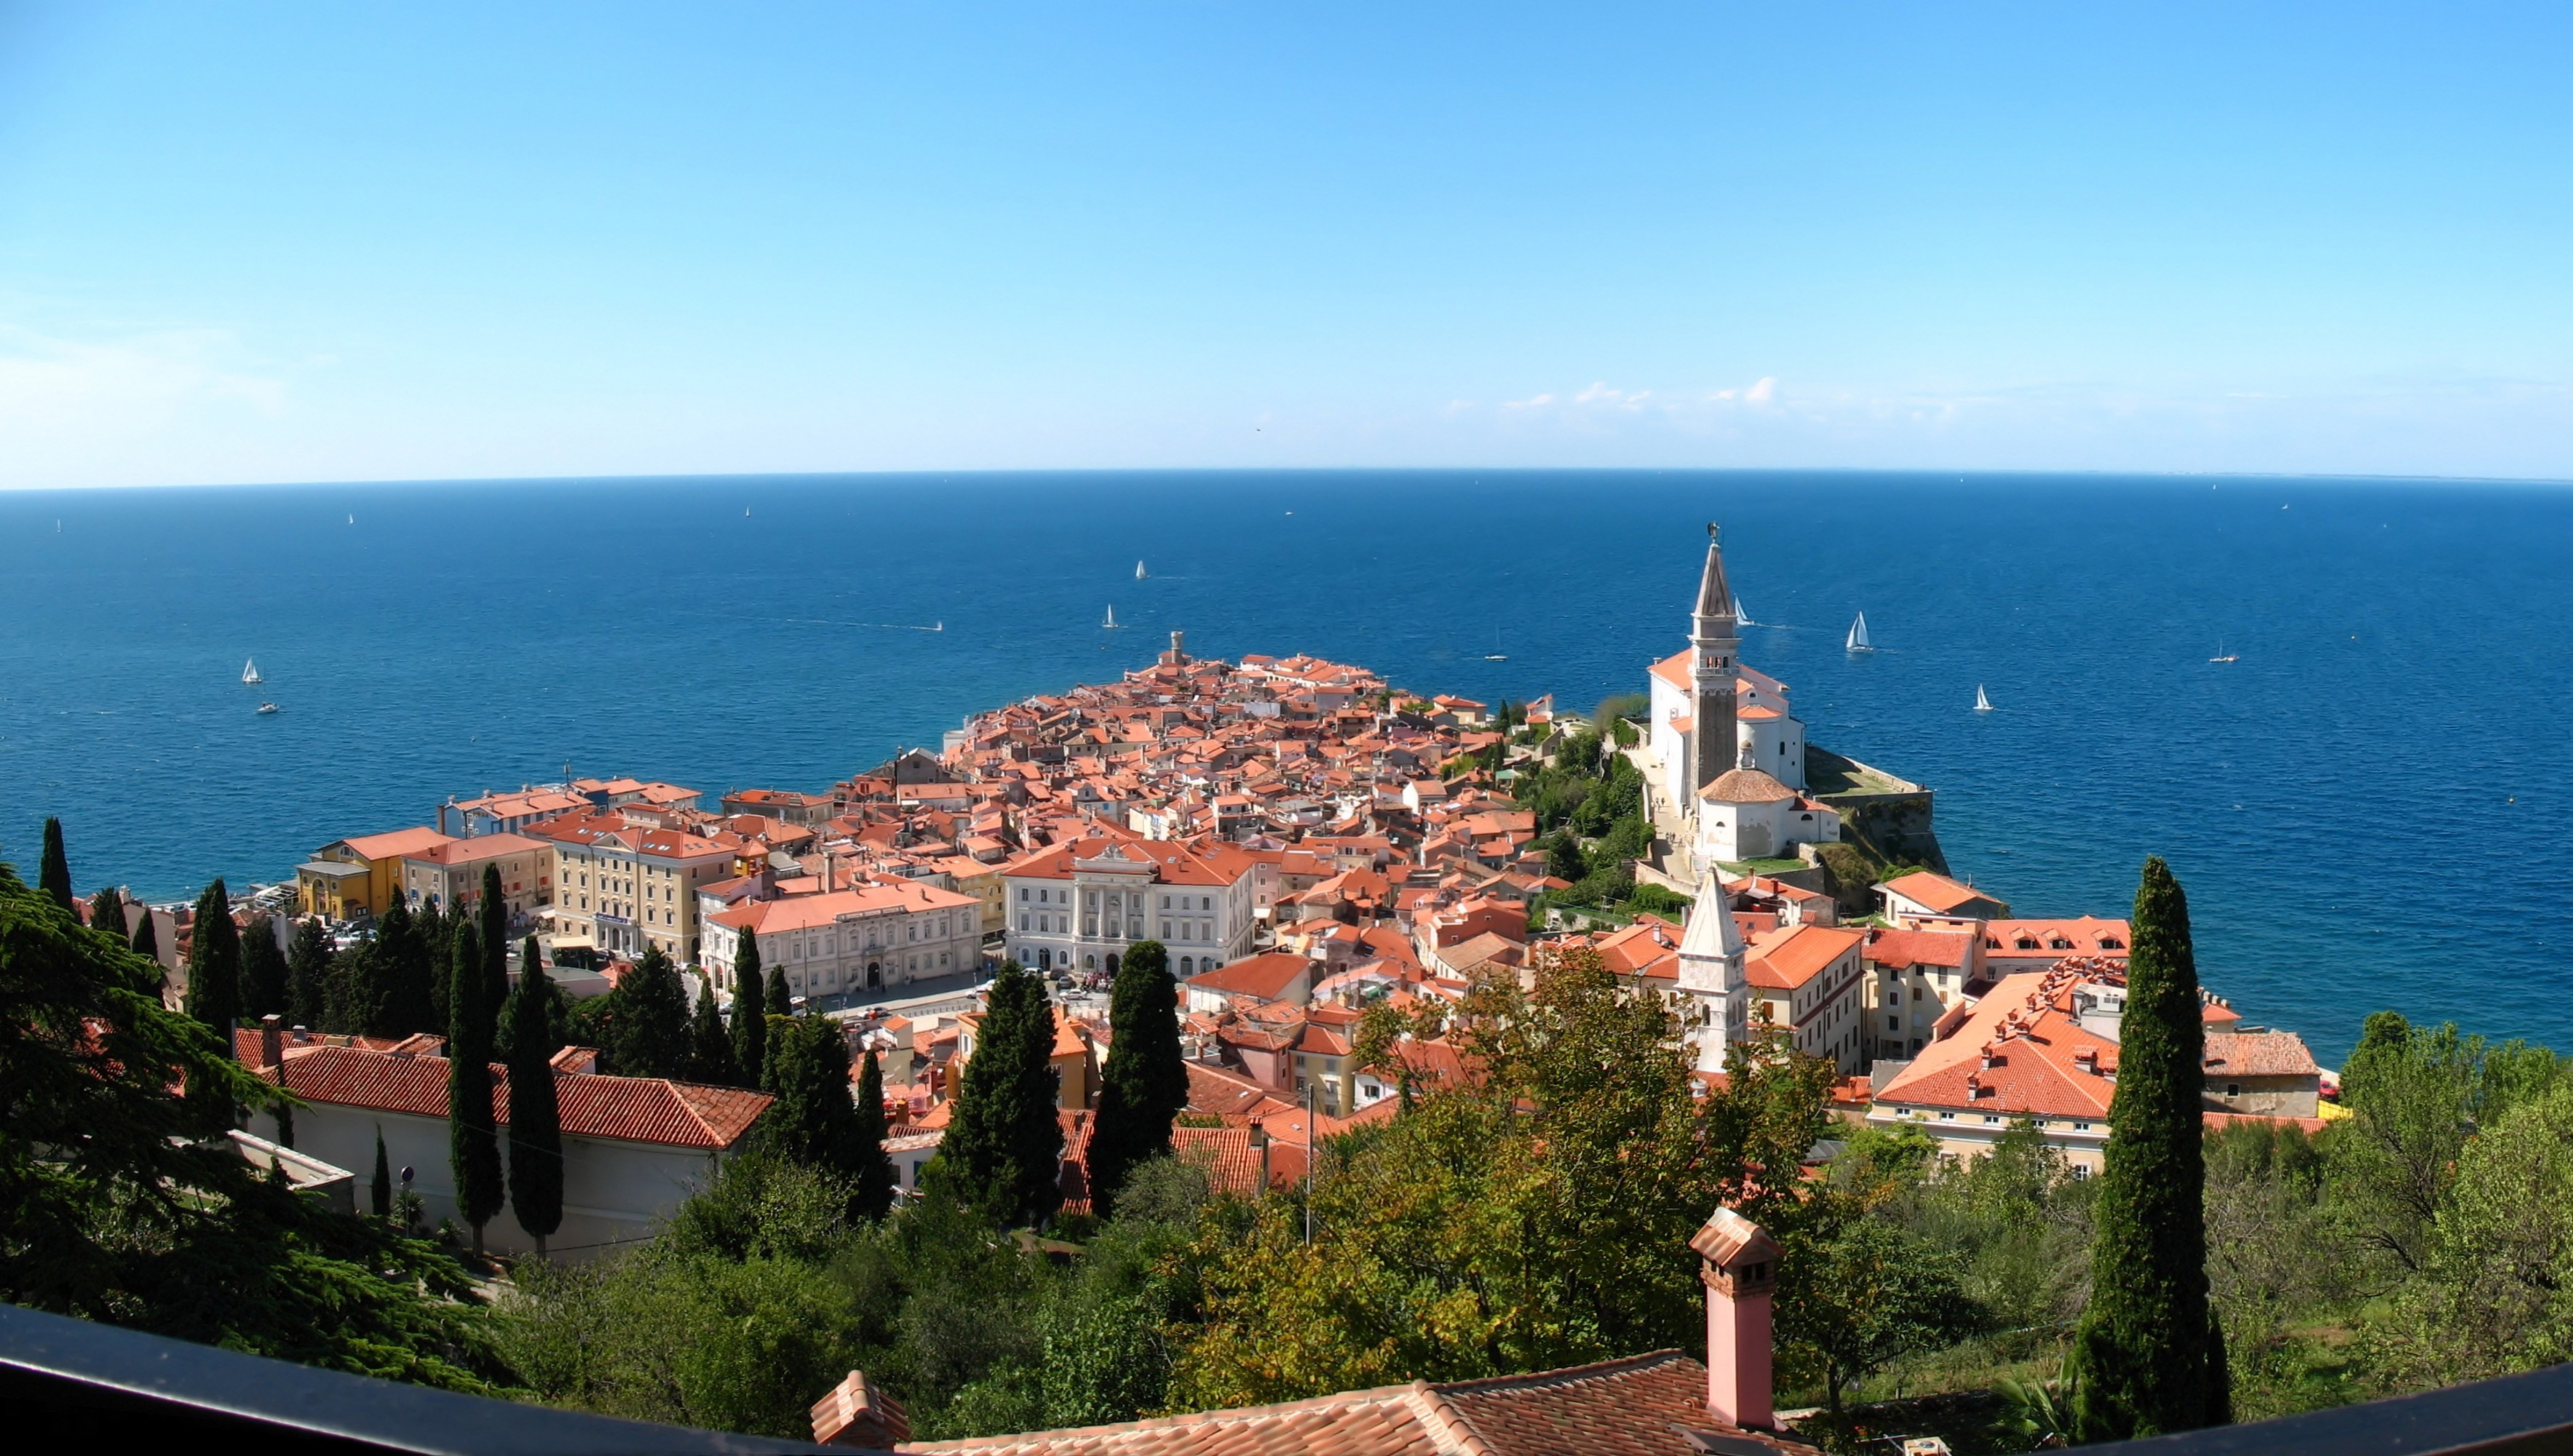 Headwater - Cycle the Adriatic: Venice to Porec Self-Guided